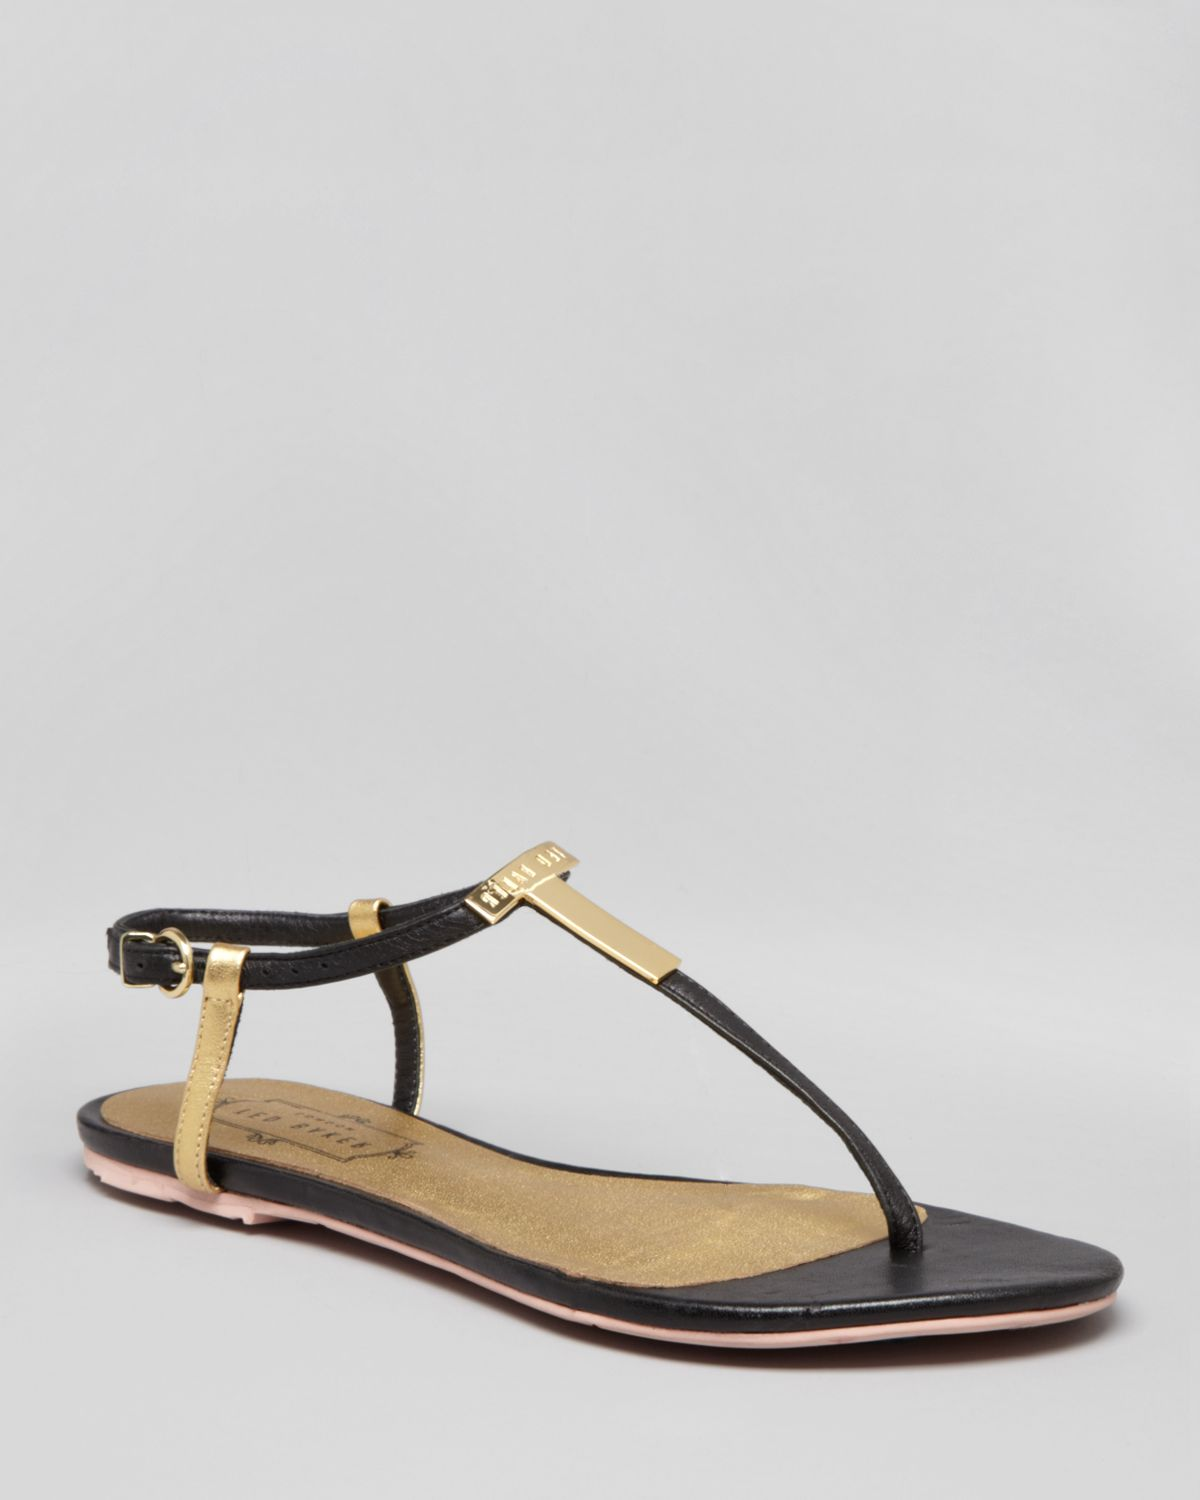 f31ebfec987f78 ... Ted Baker Logo Flat Thong Sandals Reveera in Black - Lyst exquisite  style 44642 e11f8 ...